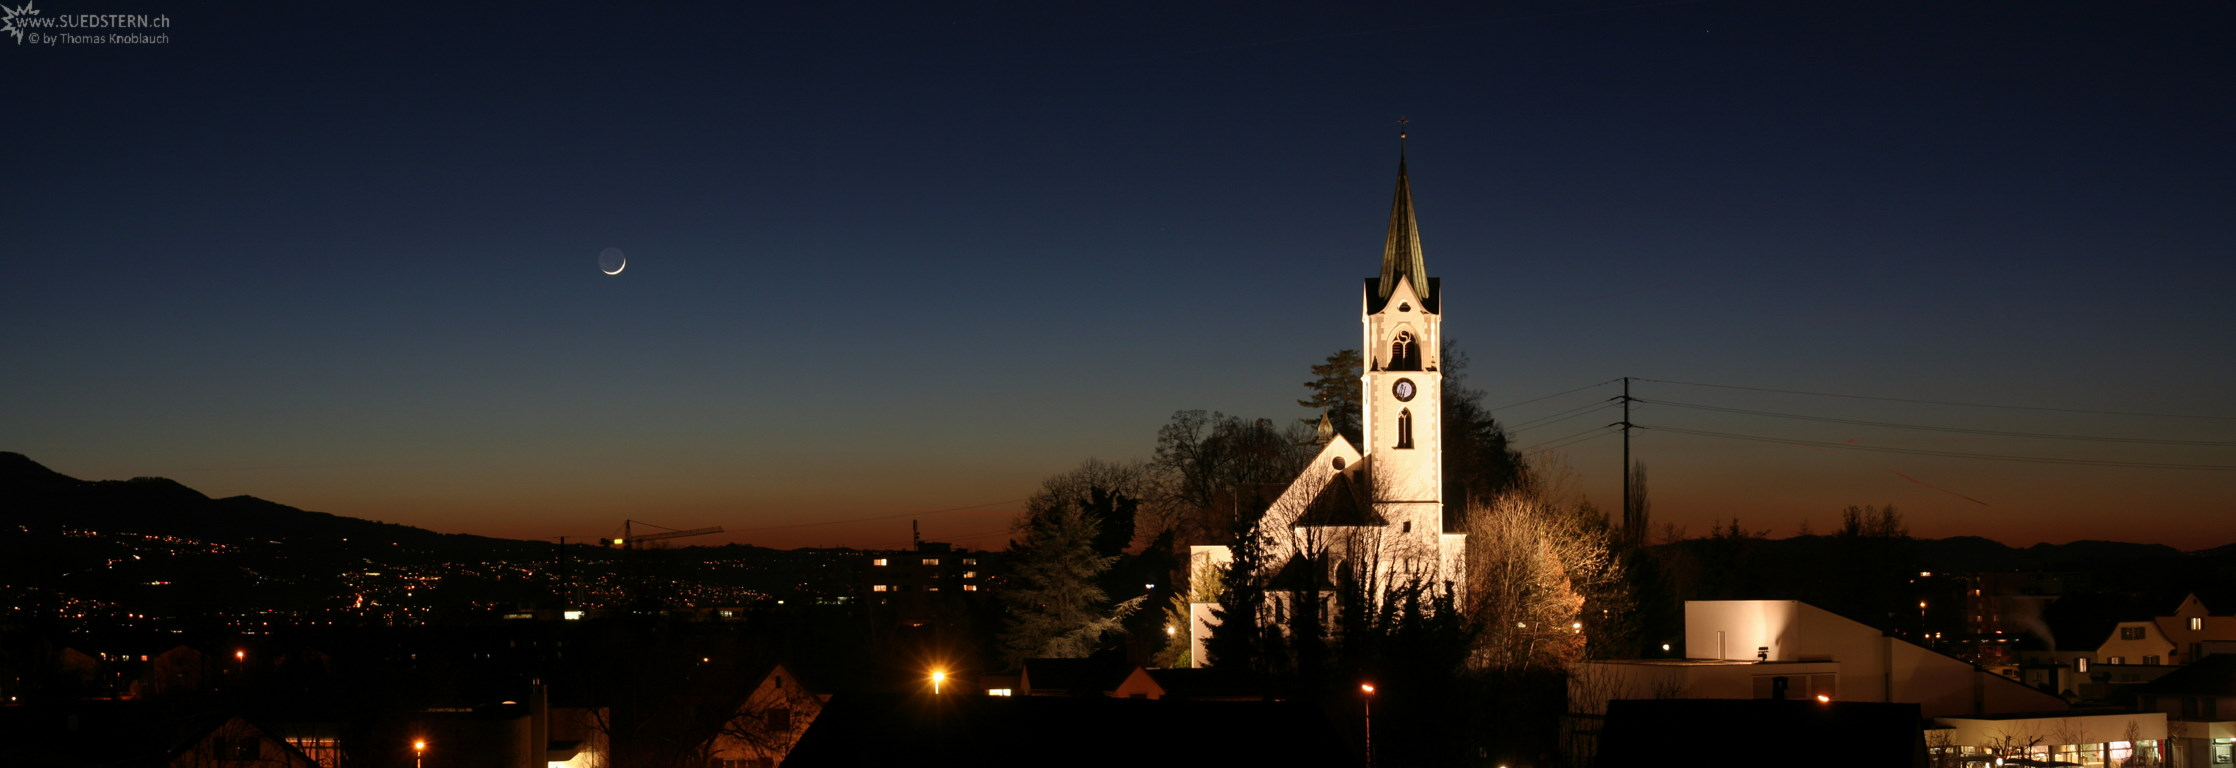 2008-02-08 - Panoramic Sundown with Moon and Church, Jona, Switzerland